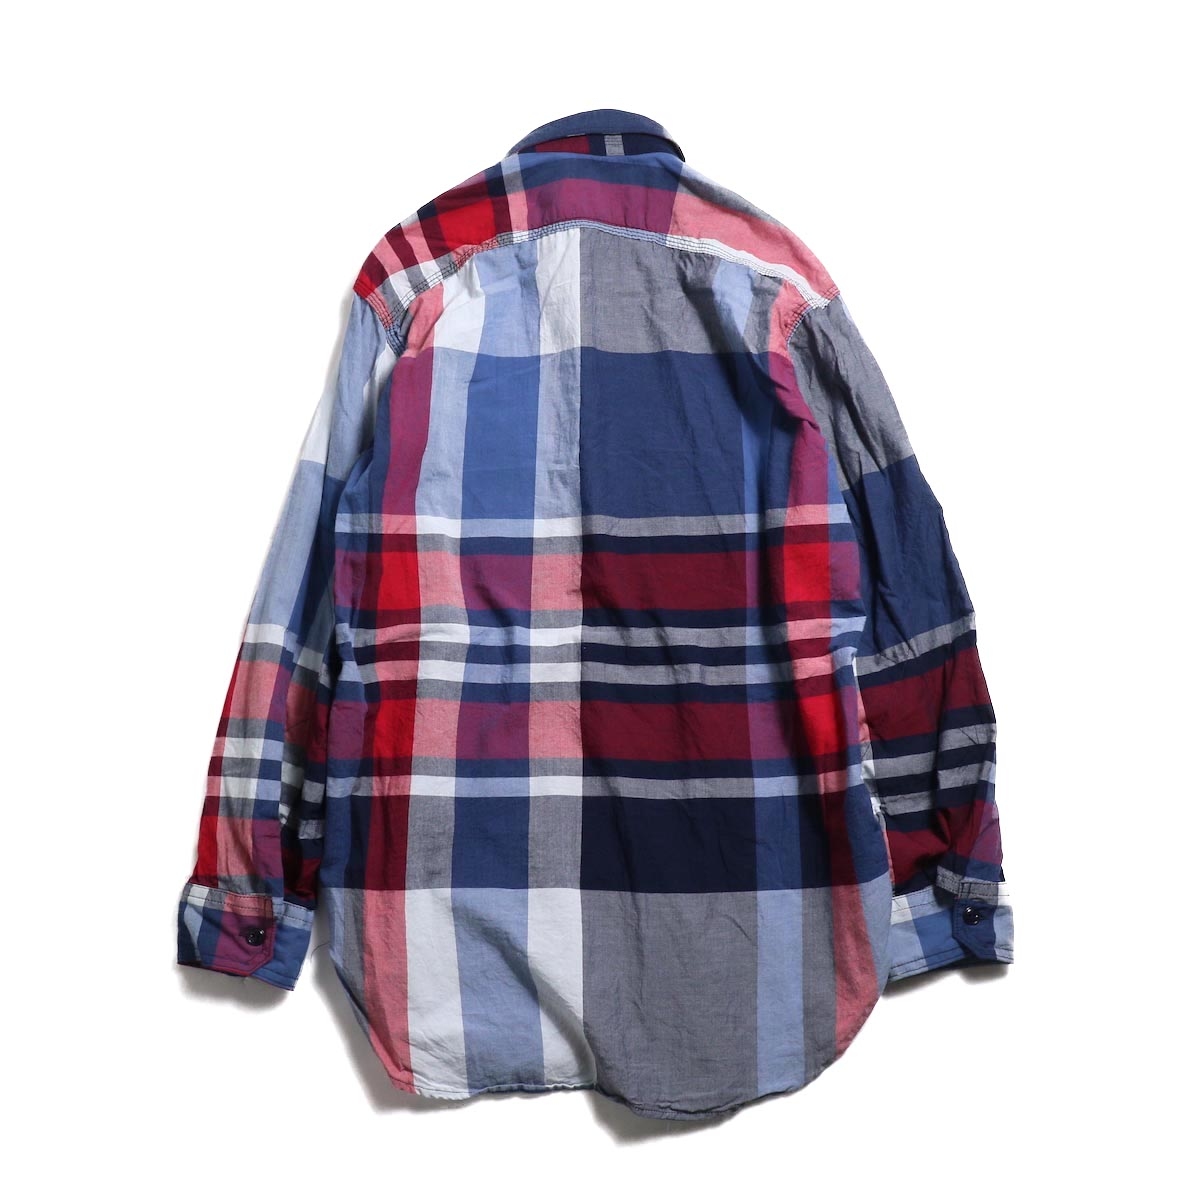 ENGINEERED GARMENTS / Work Shirt -Big Madras Plaid (Navy/Red)  背面